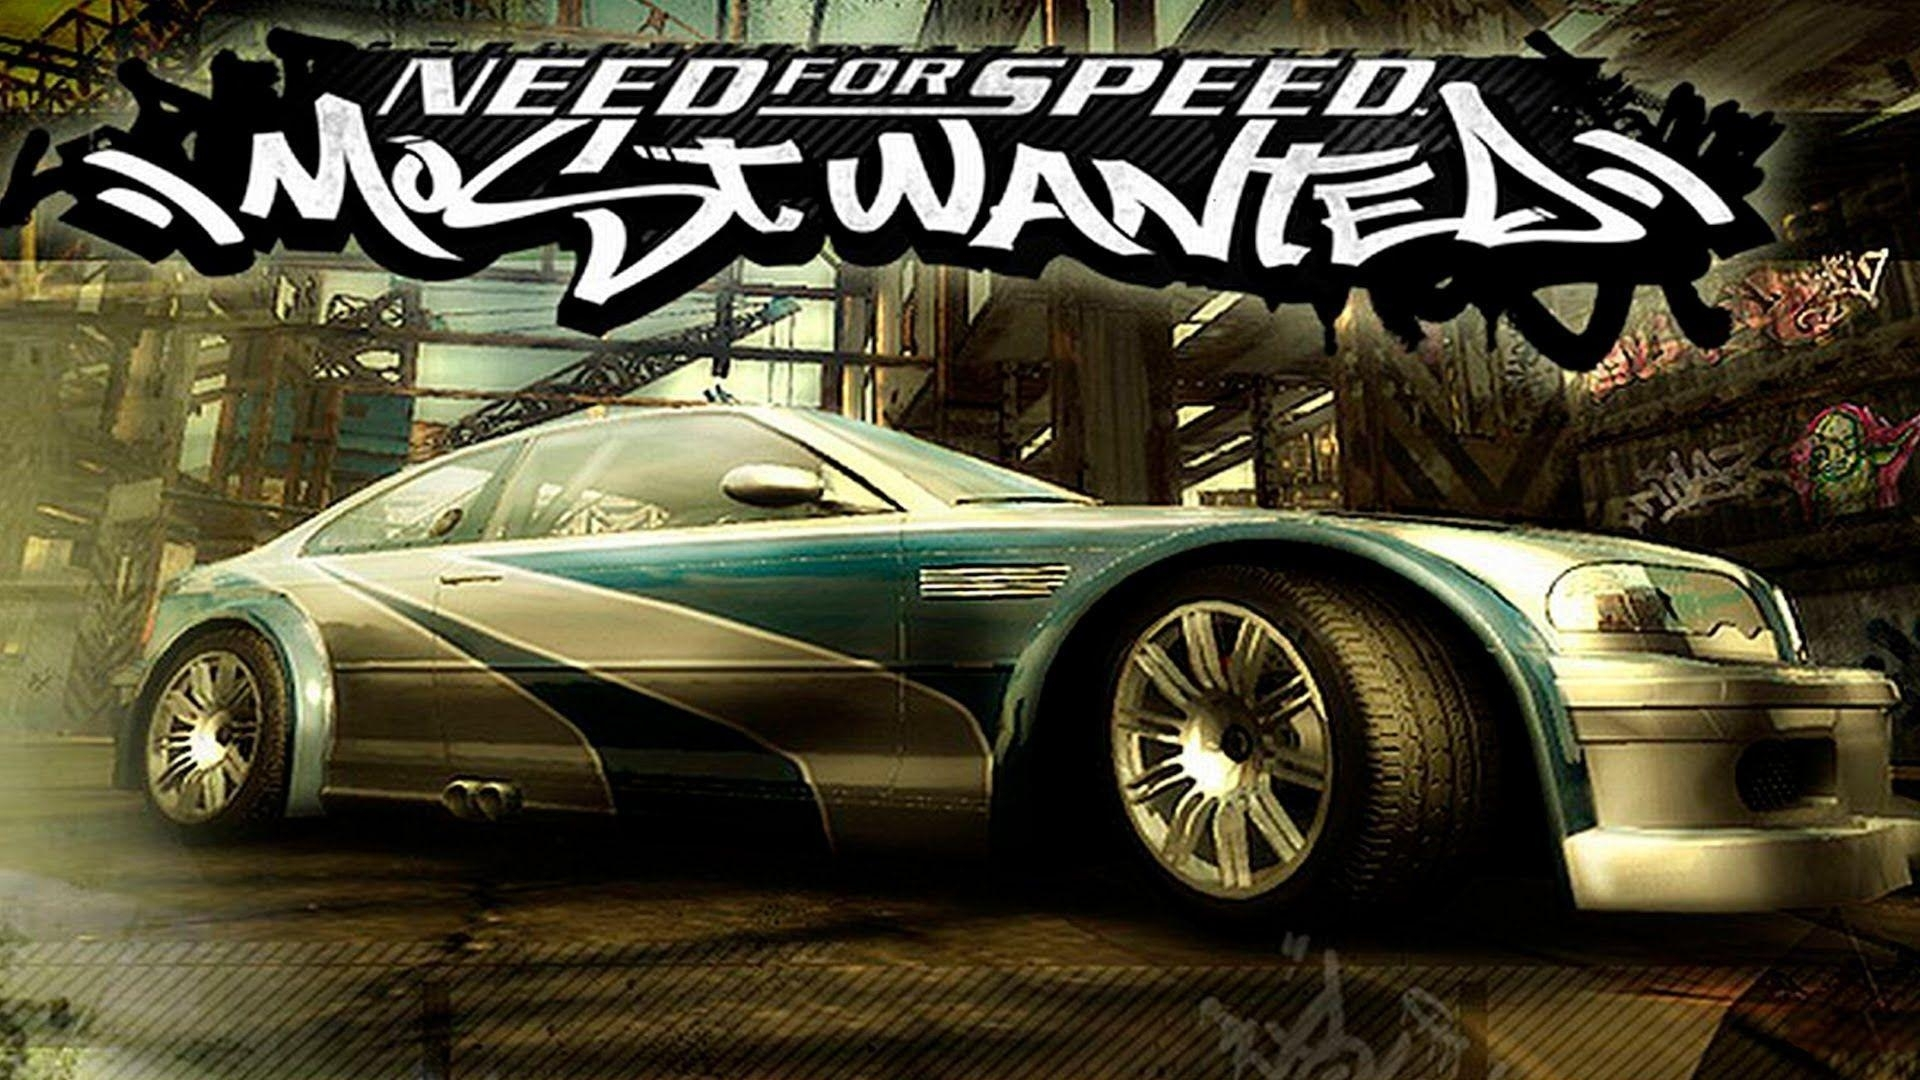 10 best need for speed mostwanted wallpapers full hd 19201080 for 10 best need for speed mostwanted wallpapers full hd 19201080 for pc background 2018 voltagebd Choice Image